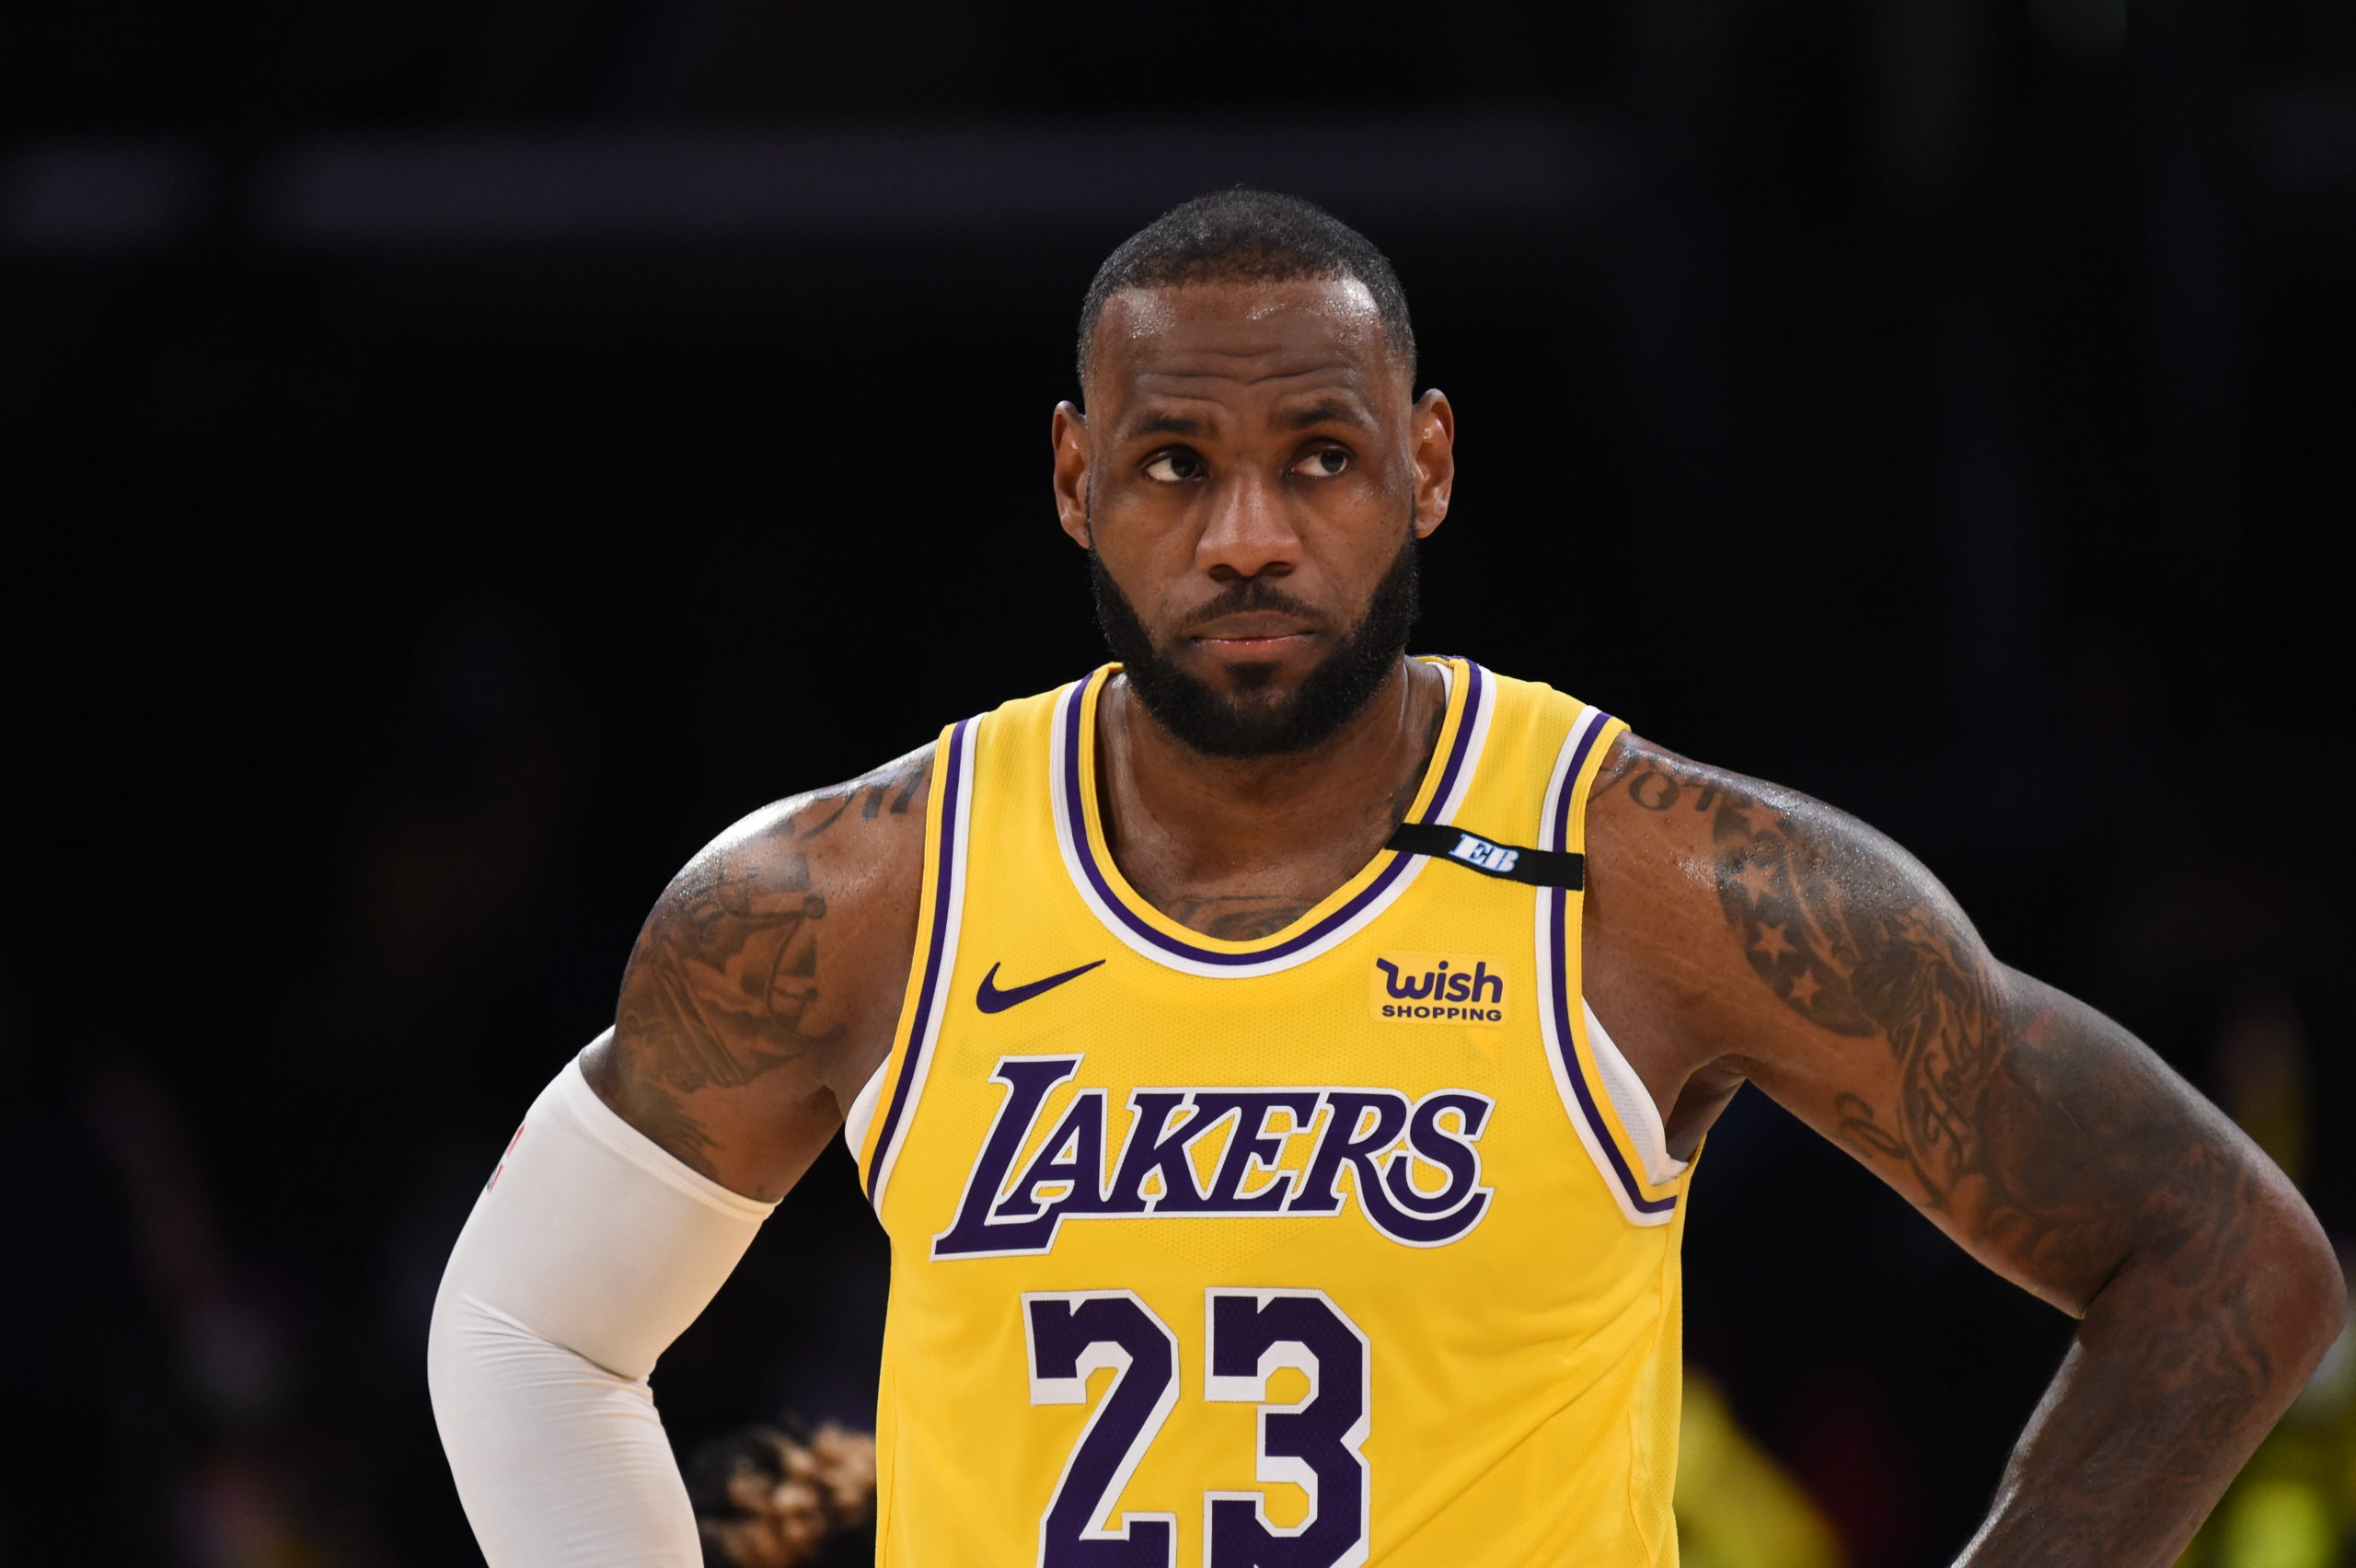 lakers-lebron-james-willing-to-dash-vs-suns-without-reference-to-ankle-ruin.jpg